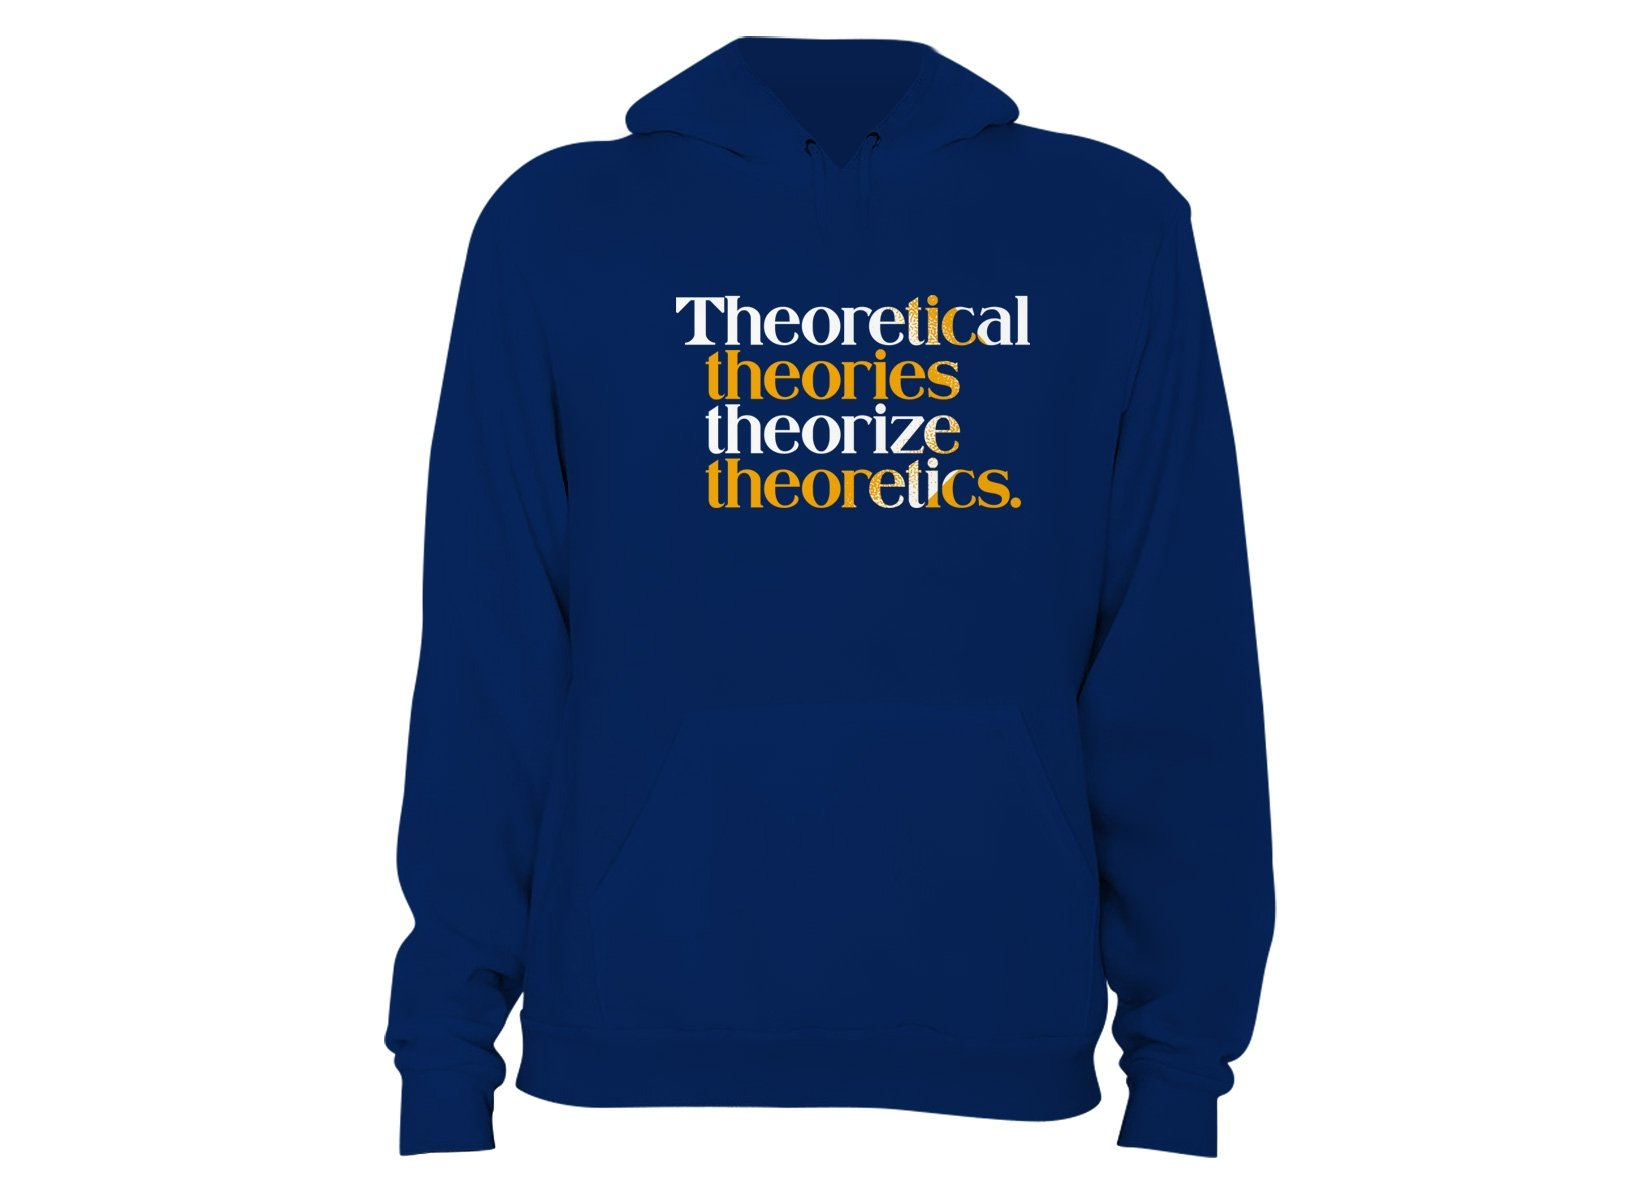 Theoretical Theories Theorize Theoretics on Hoodie